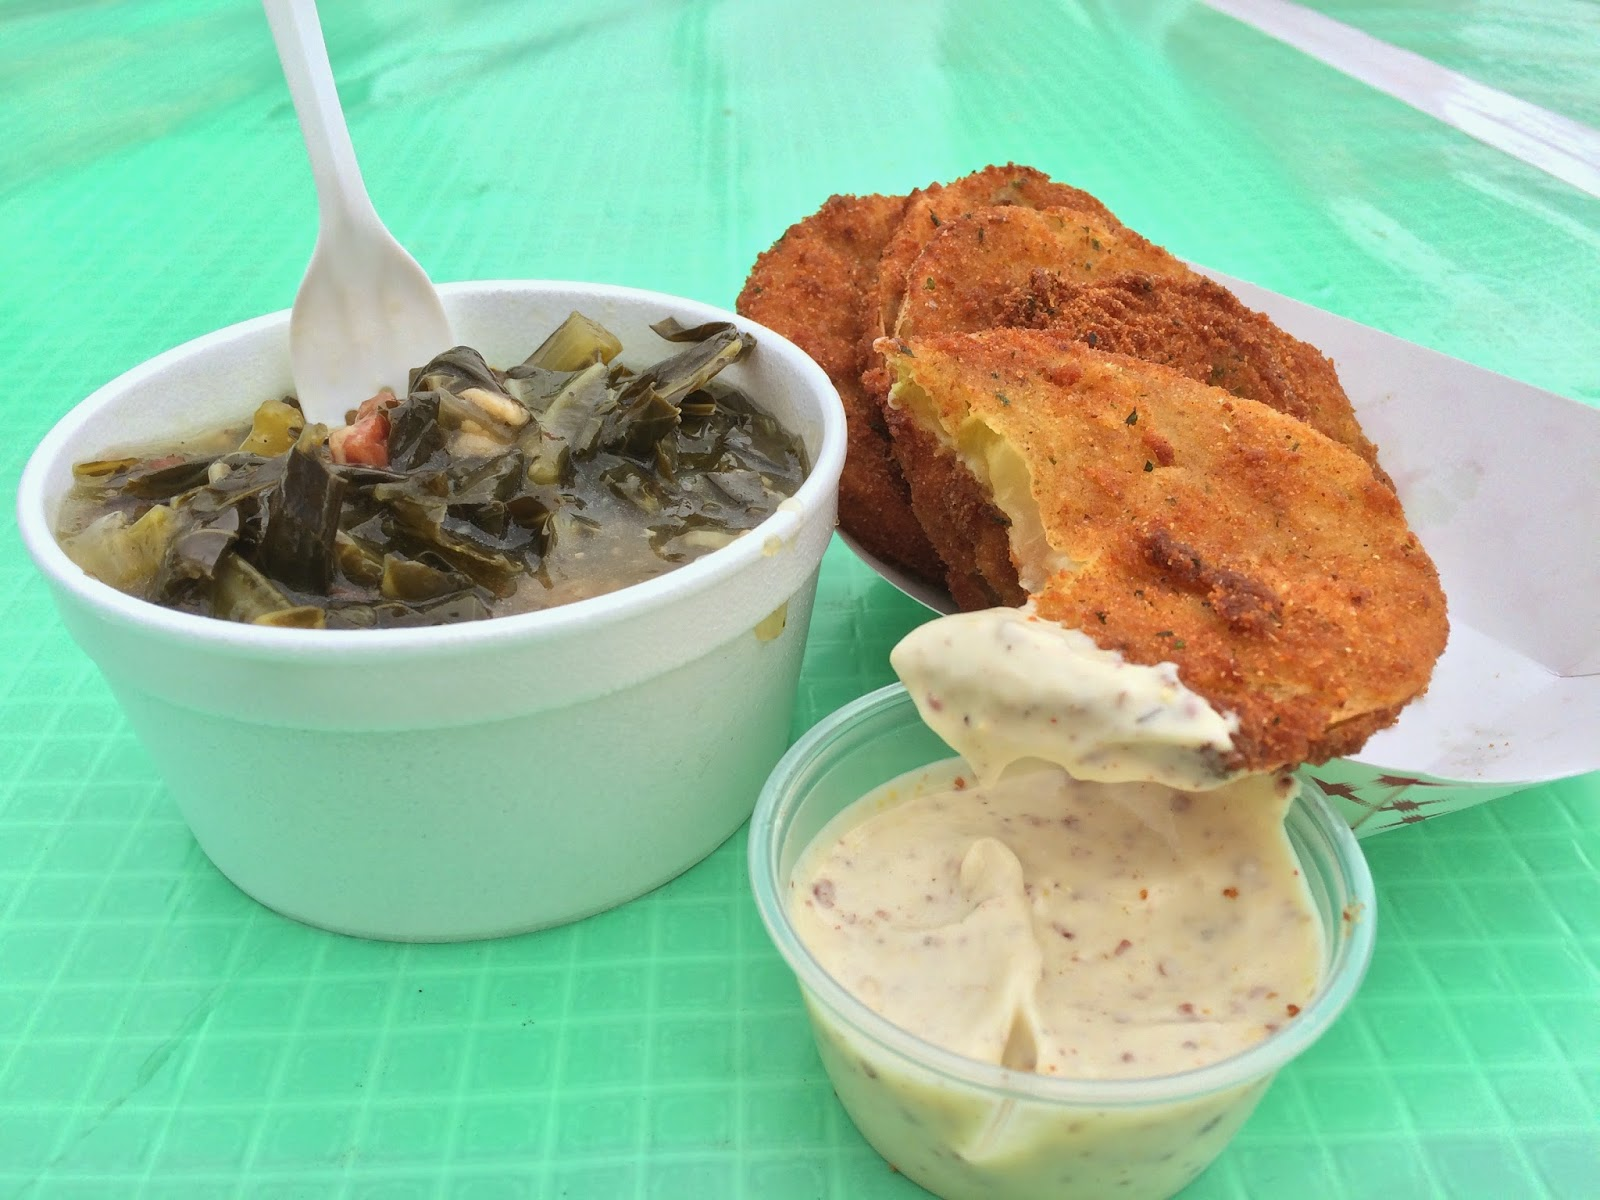 New food vendor, Squeal BBQ's Smoky Bacon Greens and classic Jazz Fest favorite, Fried Green Tomatoes